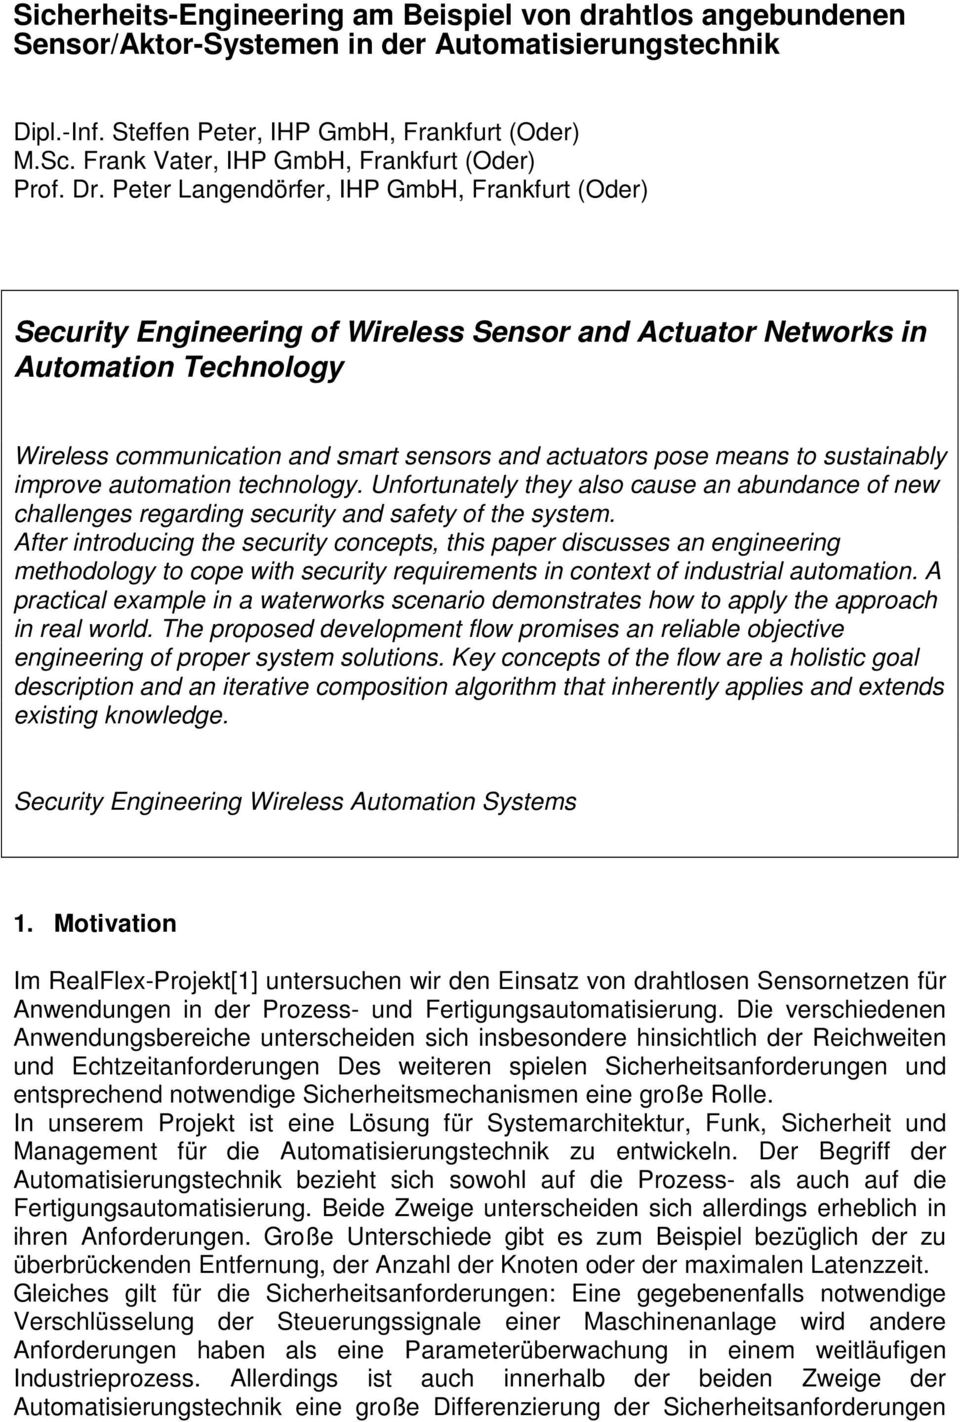 Peter Langendörfer, IHP GmbH, Frankfurt (Oder) Security Engineering of Wireless Sensor and Actuator Networks in Automation Technology Wireless communication and smart sensors and actuators pose means